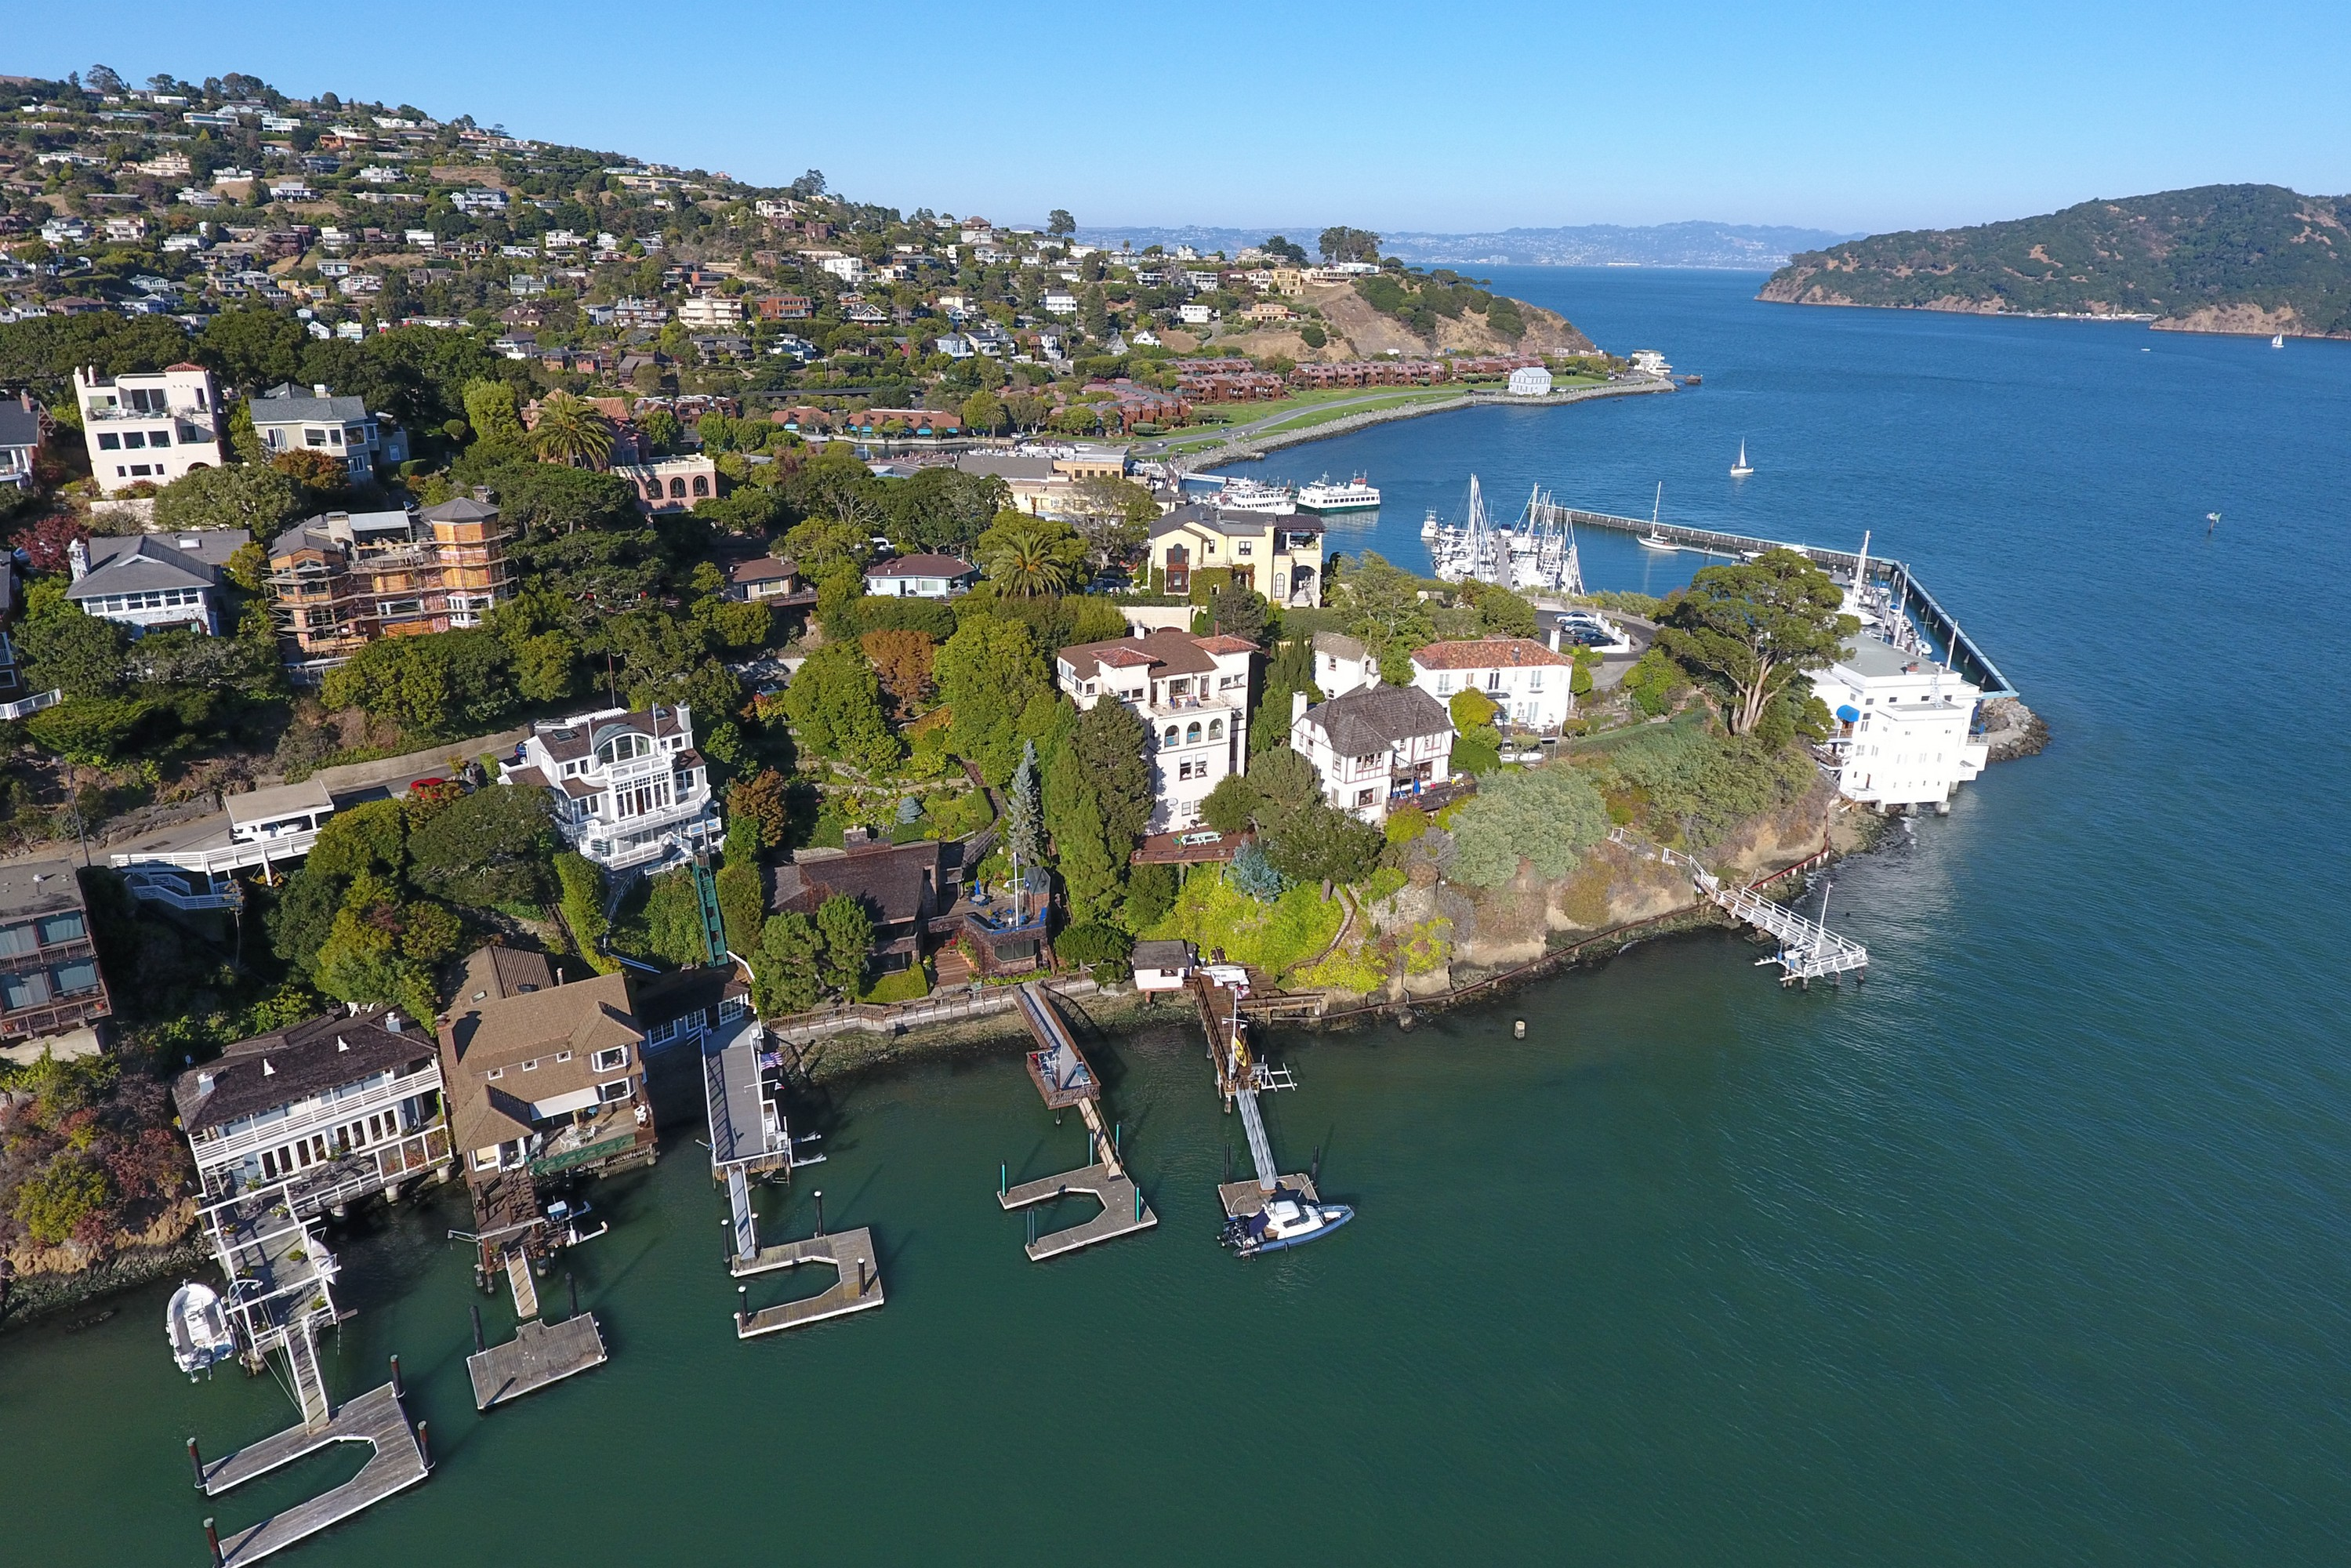 Casa Unifamiliar por un Venta en Prime Waterfront Home with Boat Dock and Beach House 71 Bellevue Avenue Belvedere, California, 94920 Estados Unidos